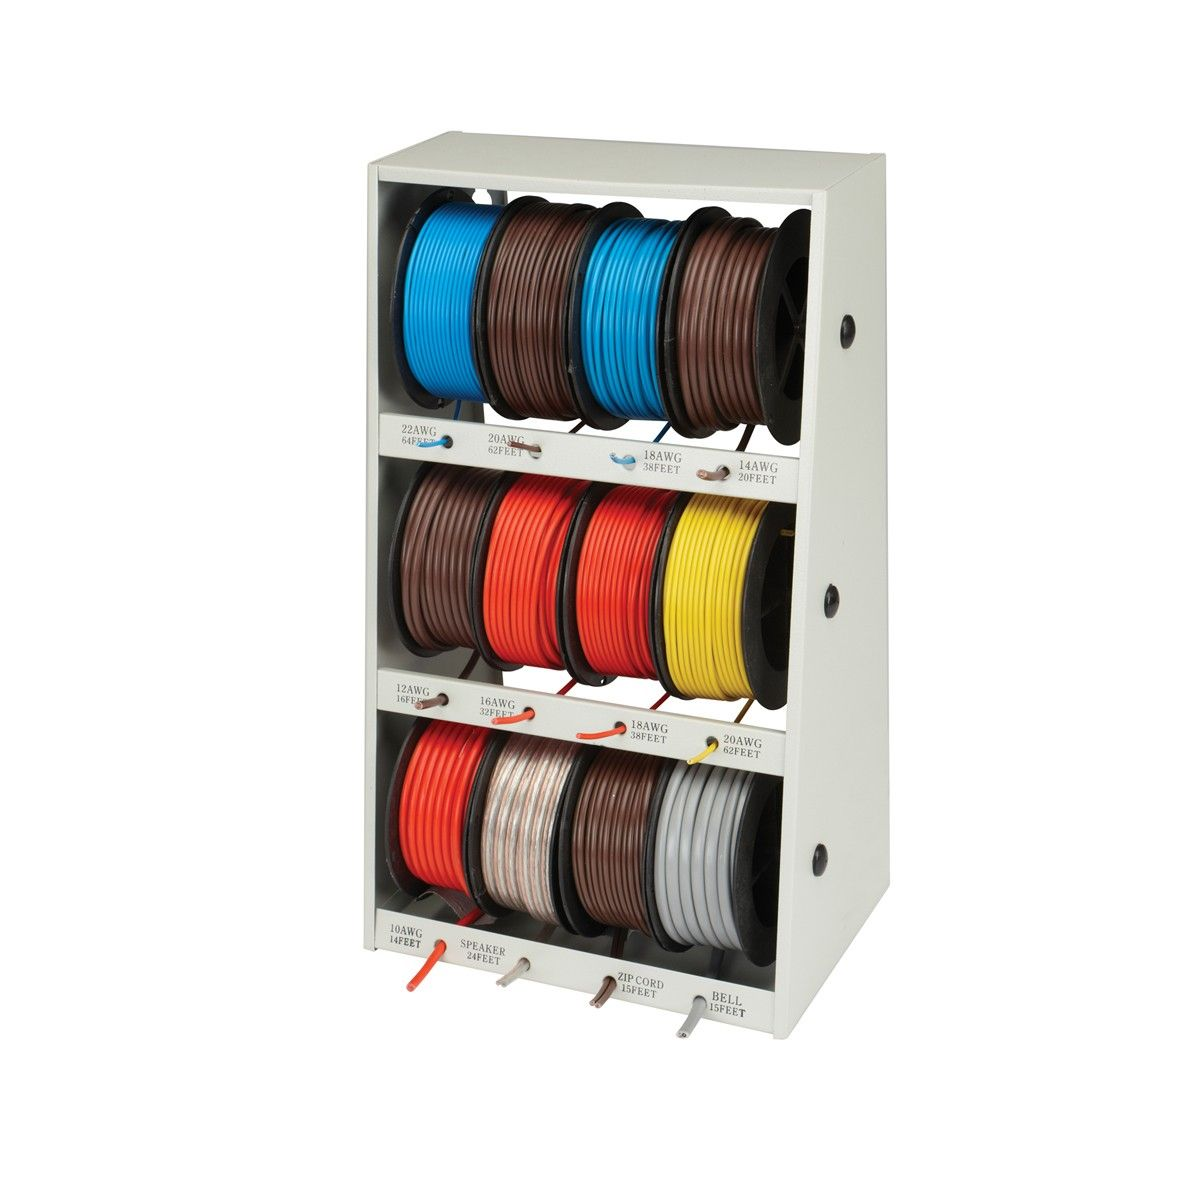 hight resolution of 400 ft wire storehouse home workshop workshop organization shop storage electrical wiring